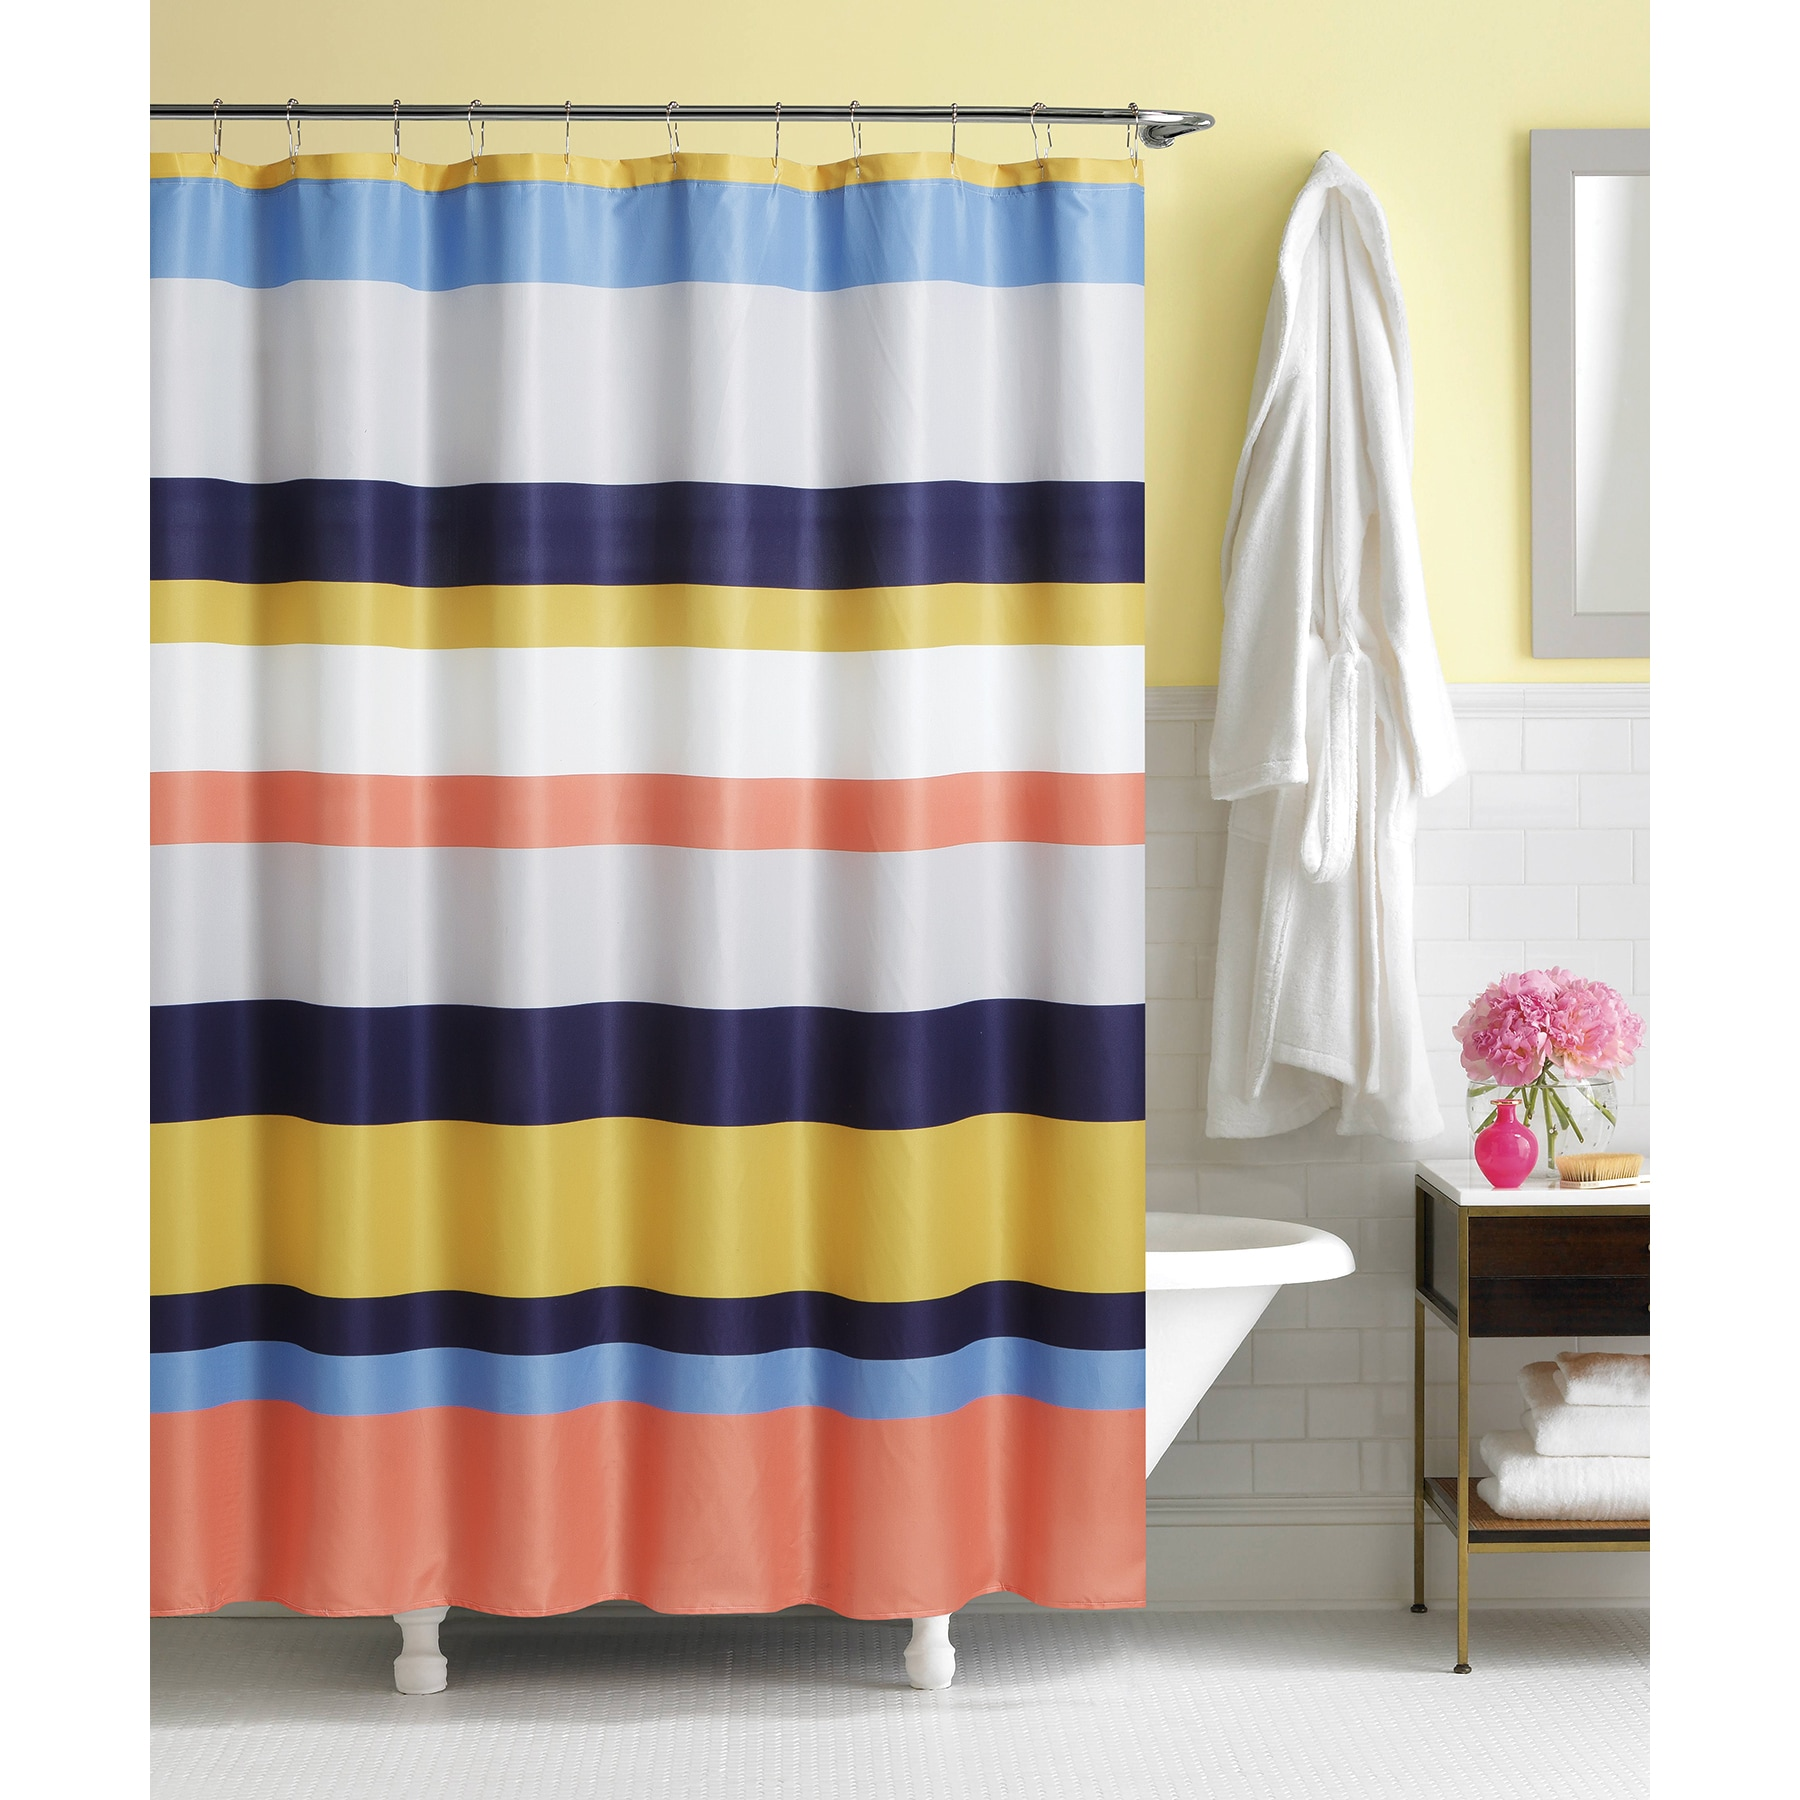 Linen Stripe Shower Curtain Bright Stripe By Artisitc Linen Easy To Hang Rainfall Collection Polyester Shower Curtain